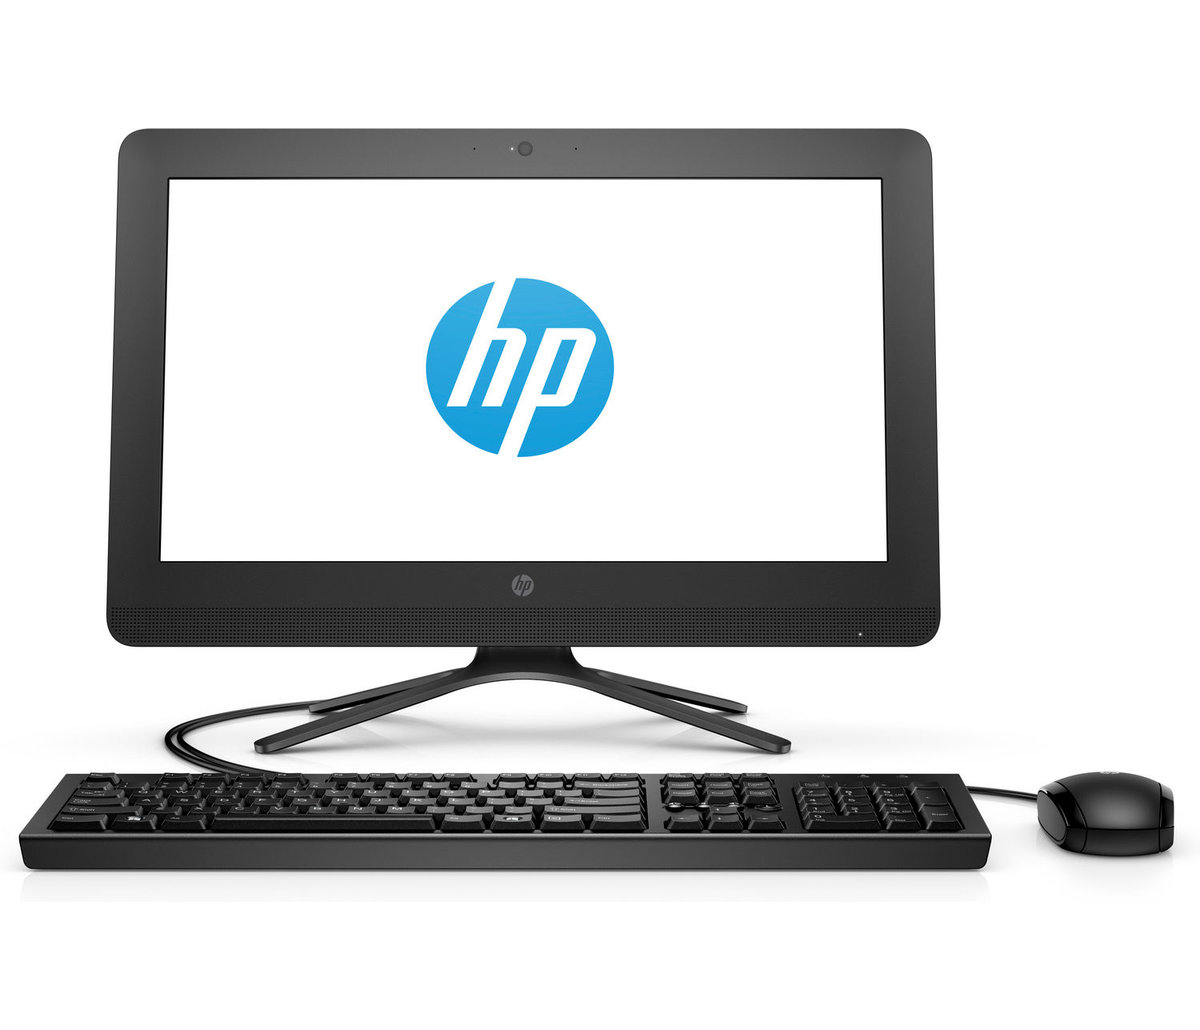 HP 22-c0019il All-in-One Desktop (Core i3 (8th Gen)/4GB RAM/1TB HDD/21.5'' (54.61 cm) LED/Dos) (Black)